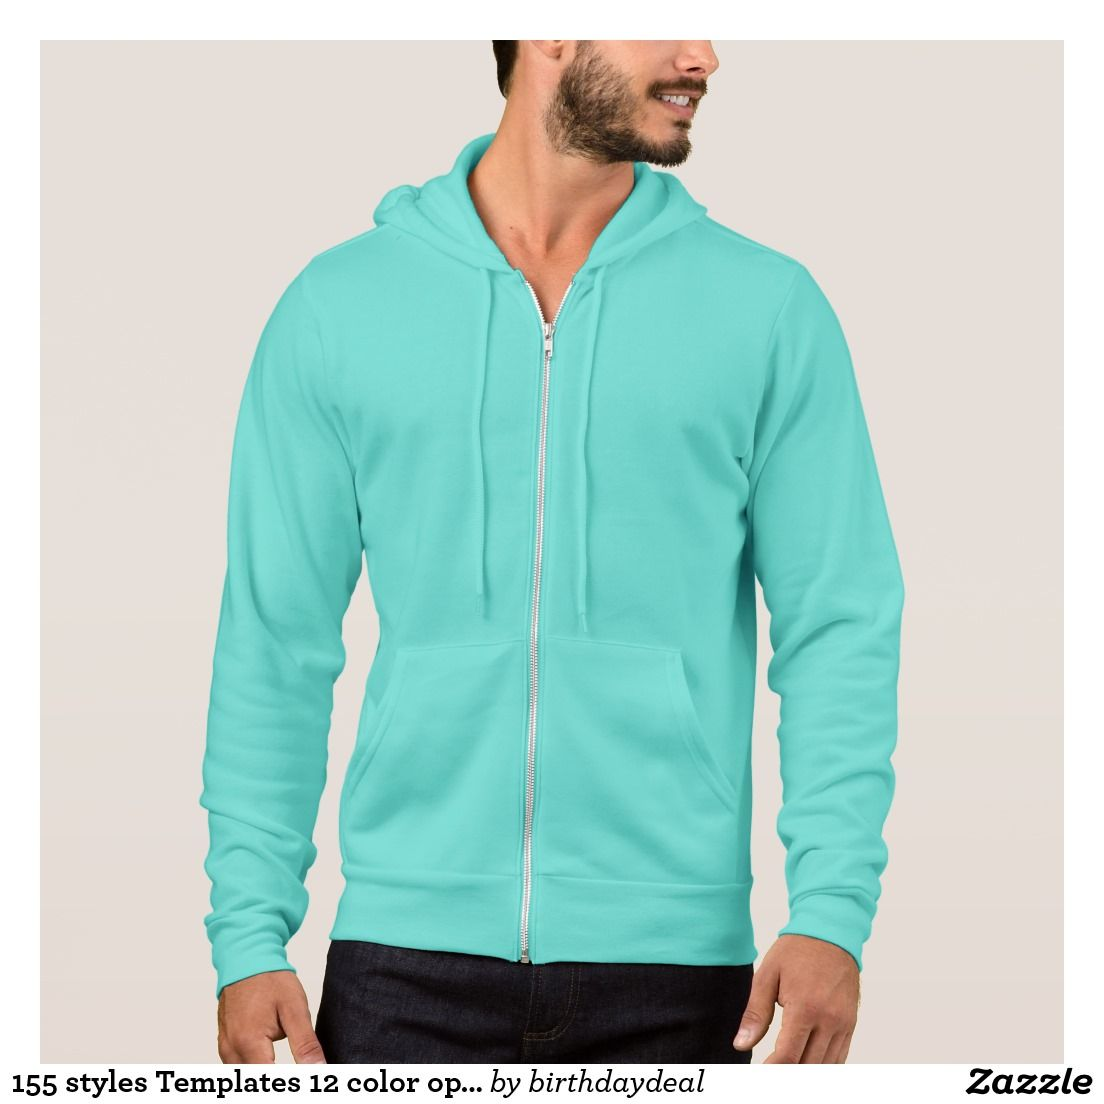 155 styles Templates 12 color options + text photo Hoodie